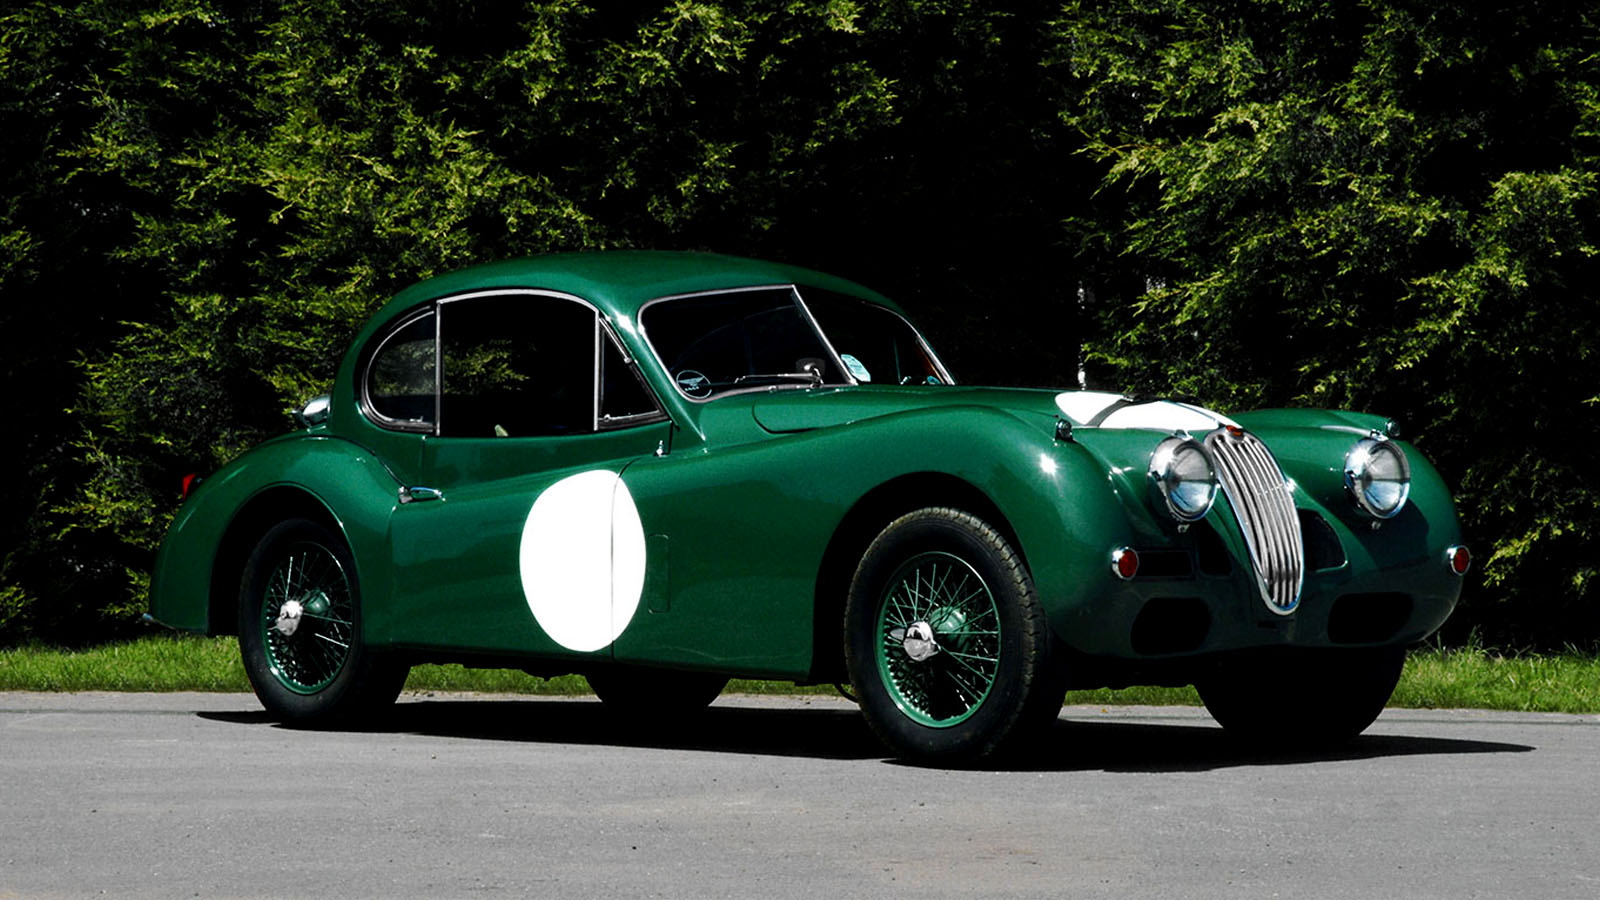 Classic Green Jaguar Parked By Some Trees.